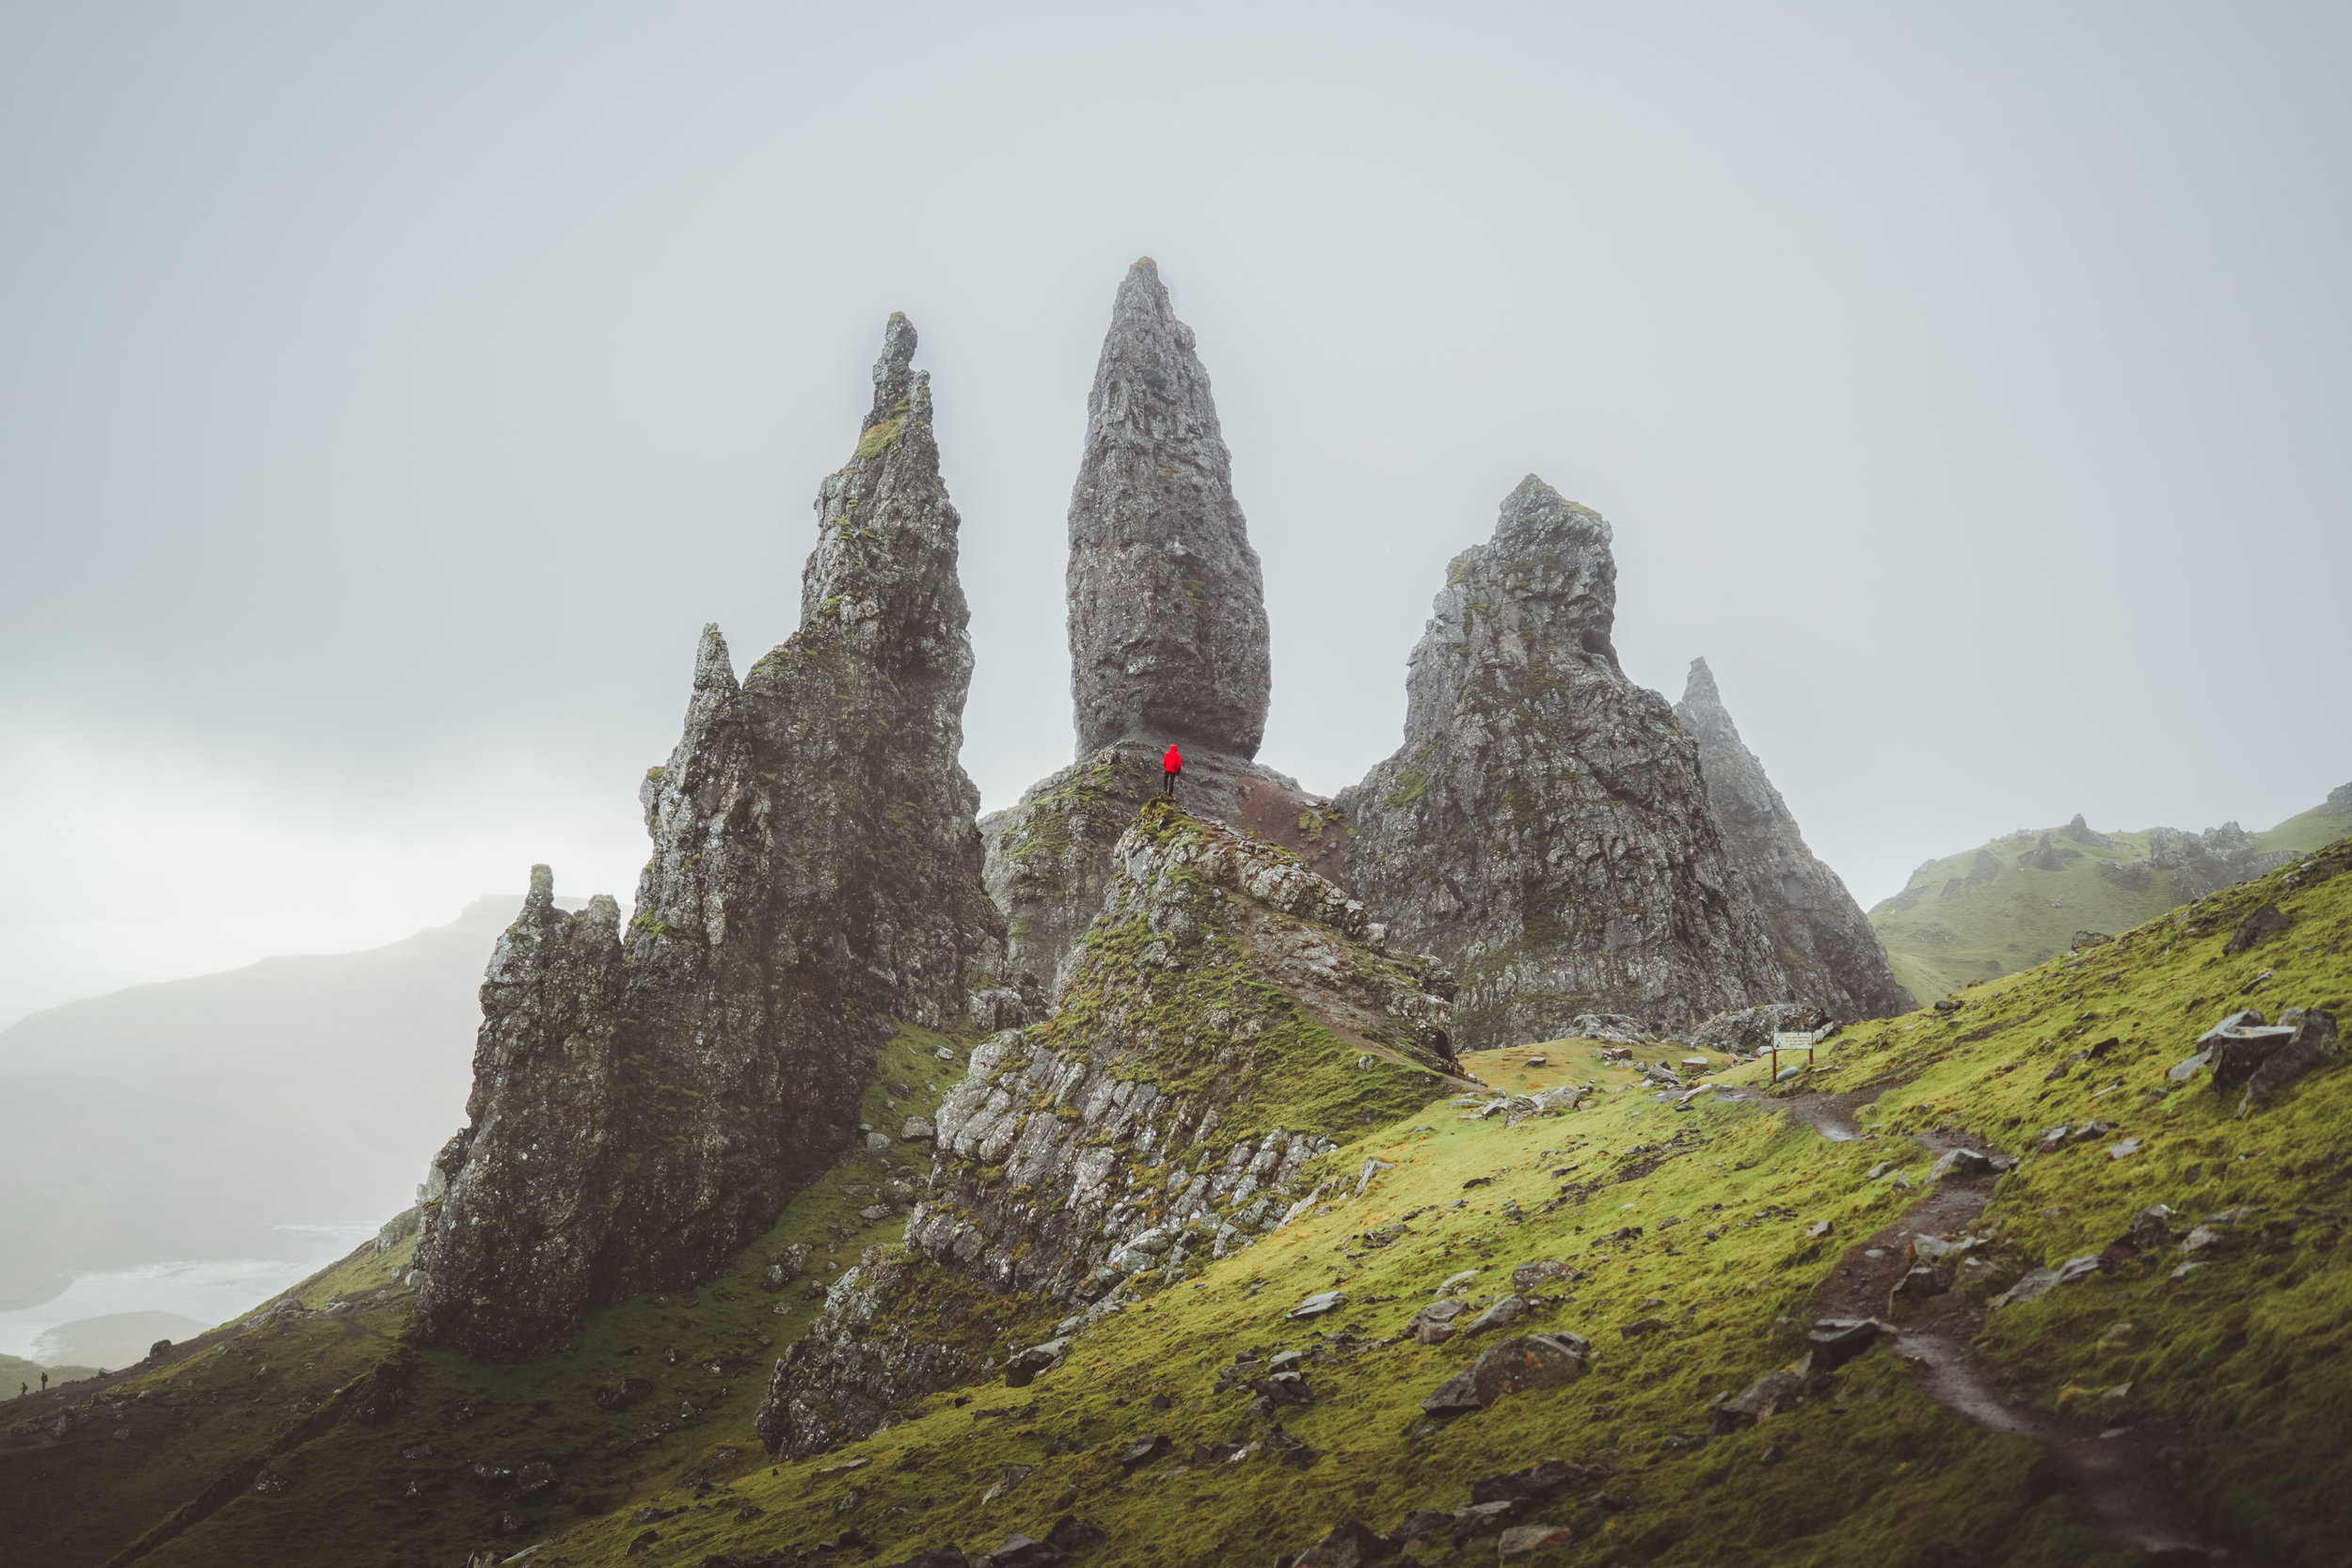 Man with red jacket in the rock of Old Man of Storr